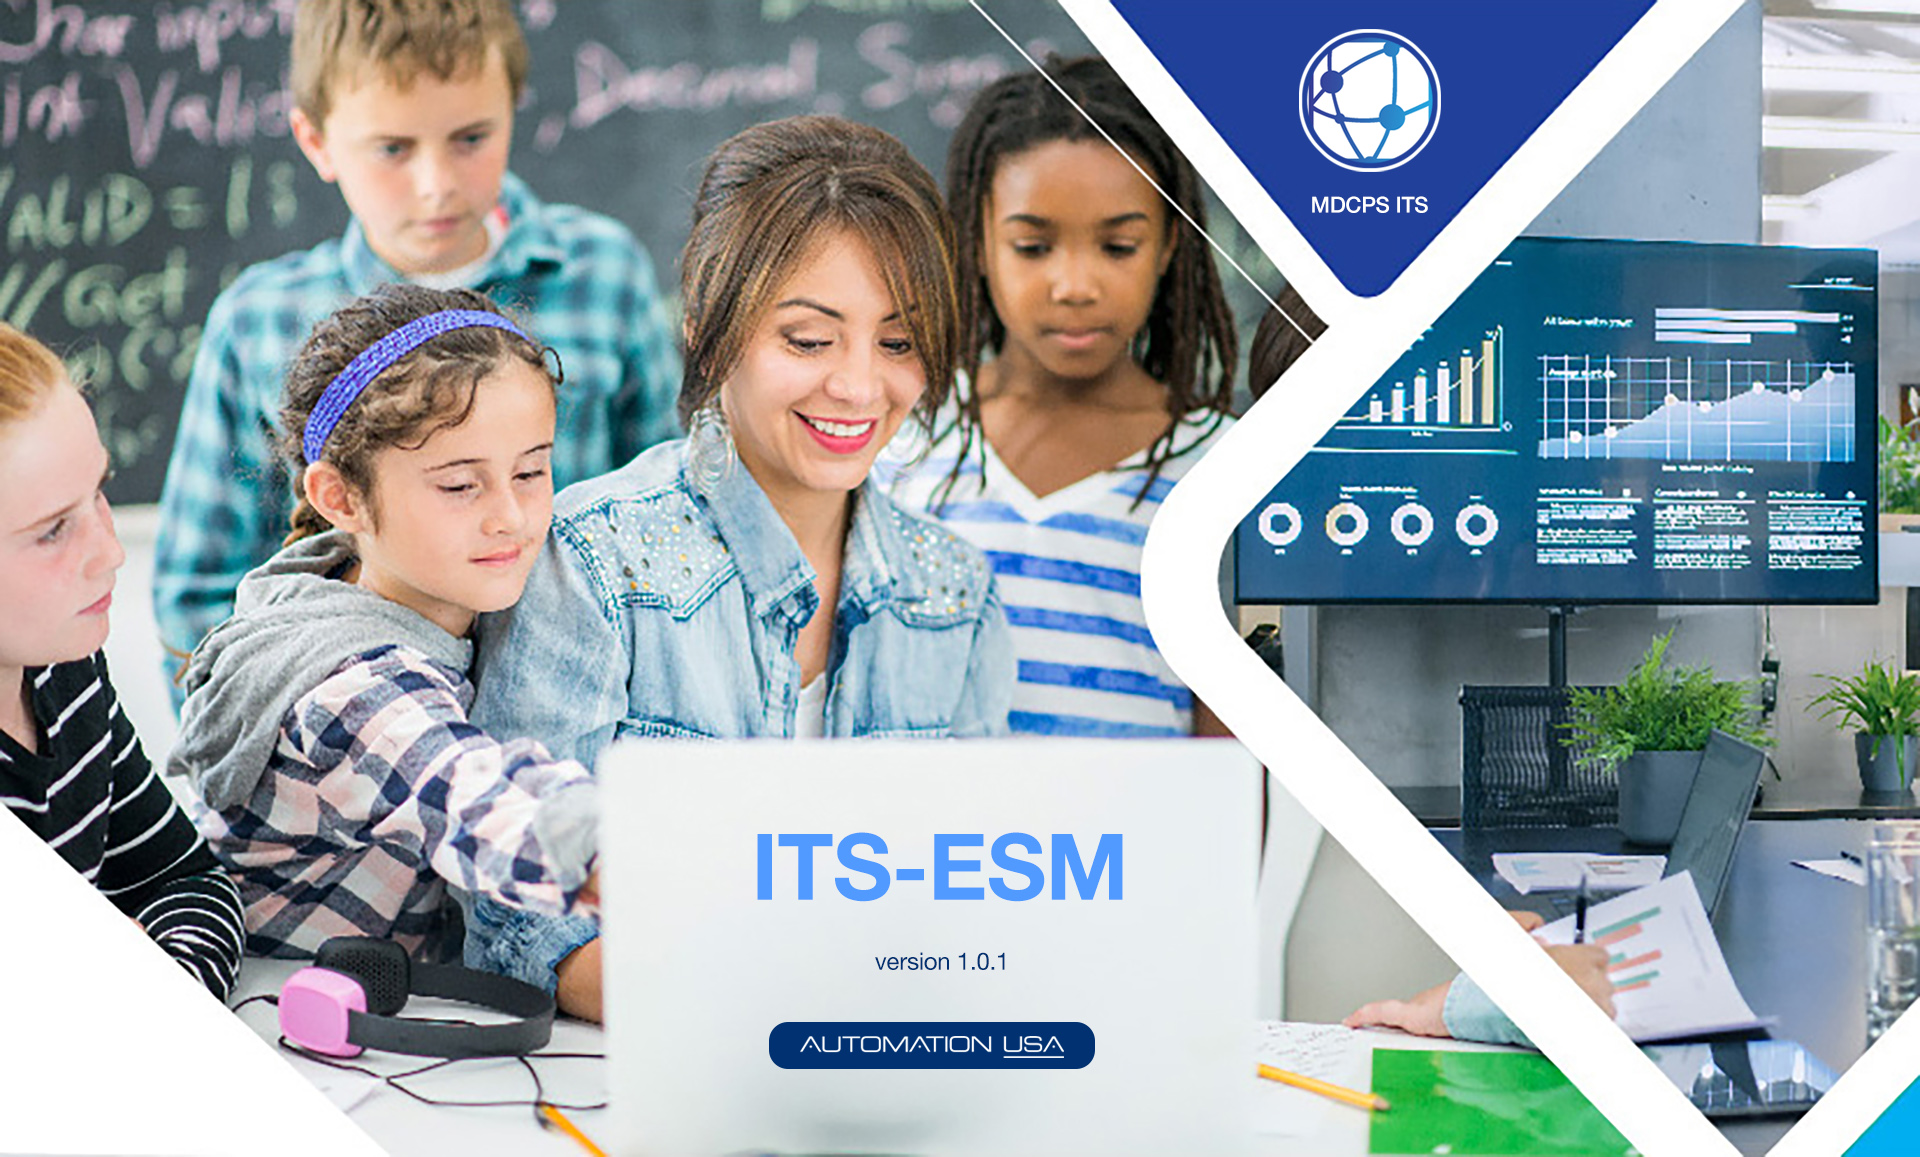 Miami-Dade County Public Schools Information Technology Services